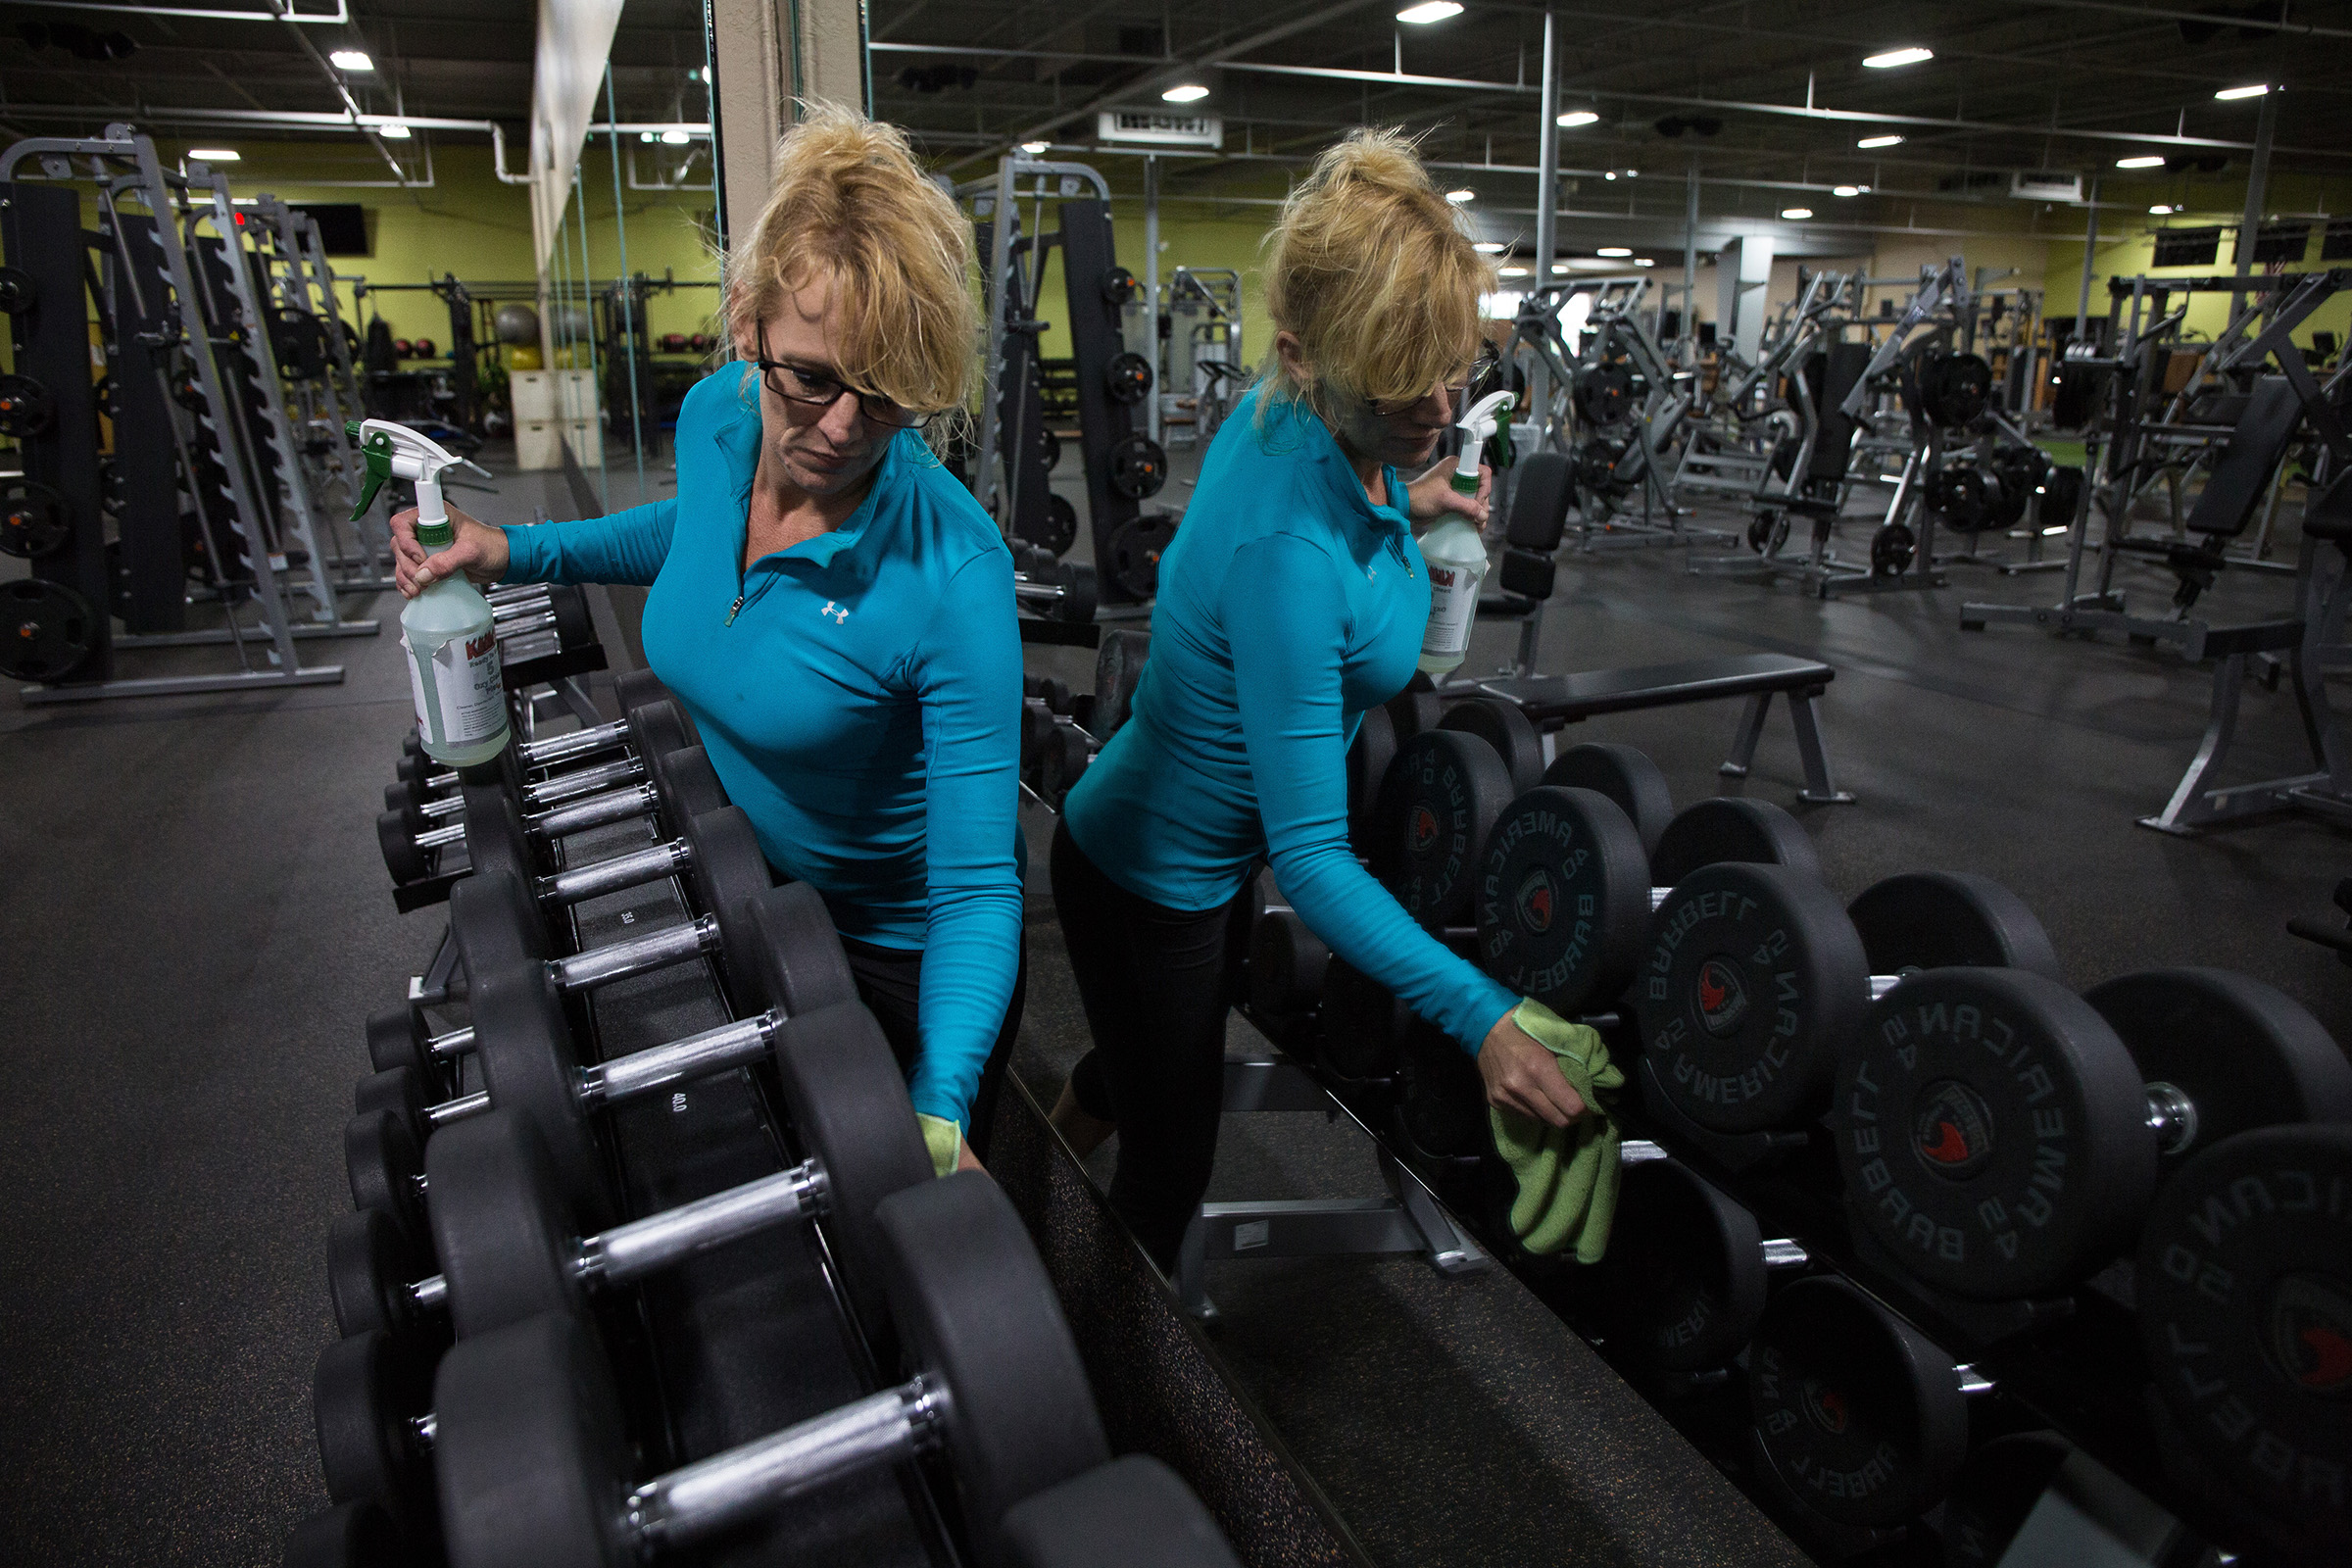 A Gold's Gym worker cleans before reopening, in Evans, Ga., on April 23, 2020.